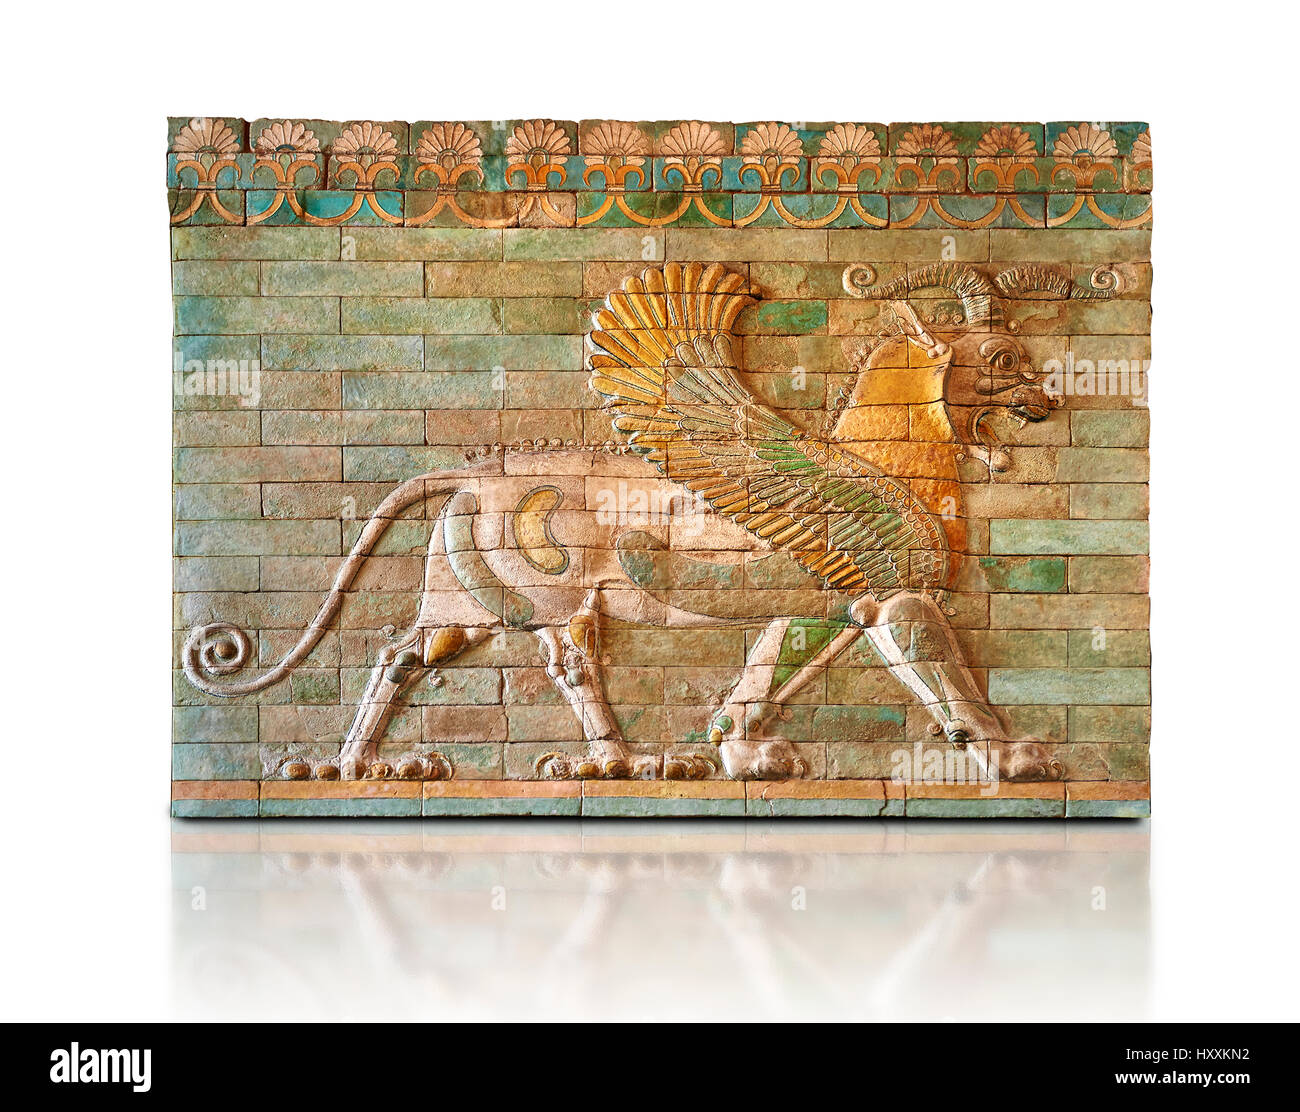 Glazed terracotta tiled panels depicting mythical Griffins. Reign of Darius 1st,  First Persian Empire. Susa C. - Stock Image